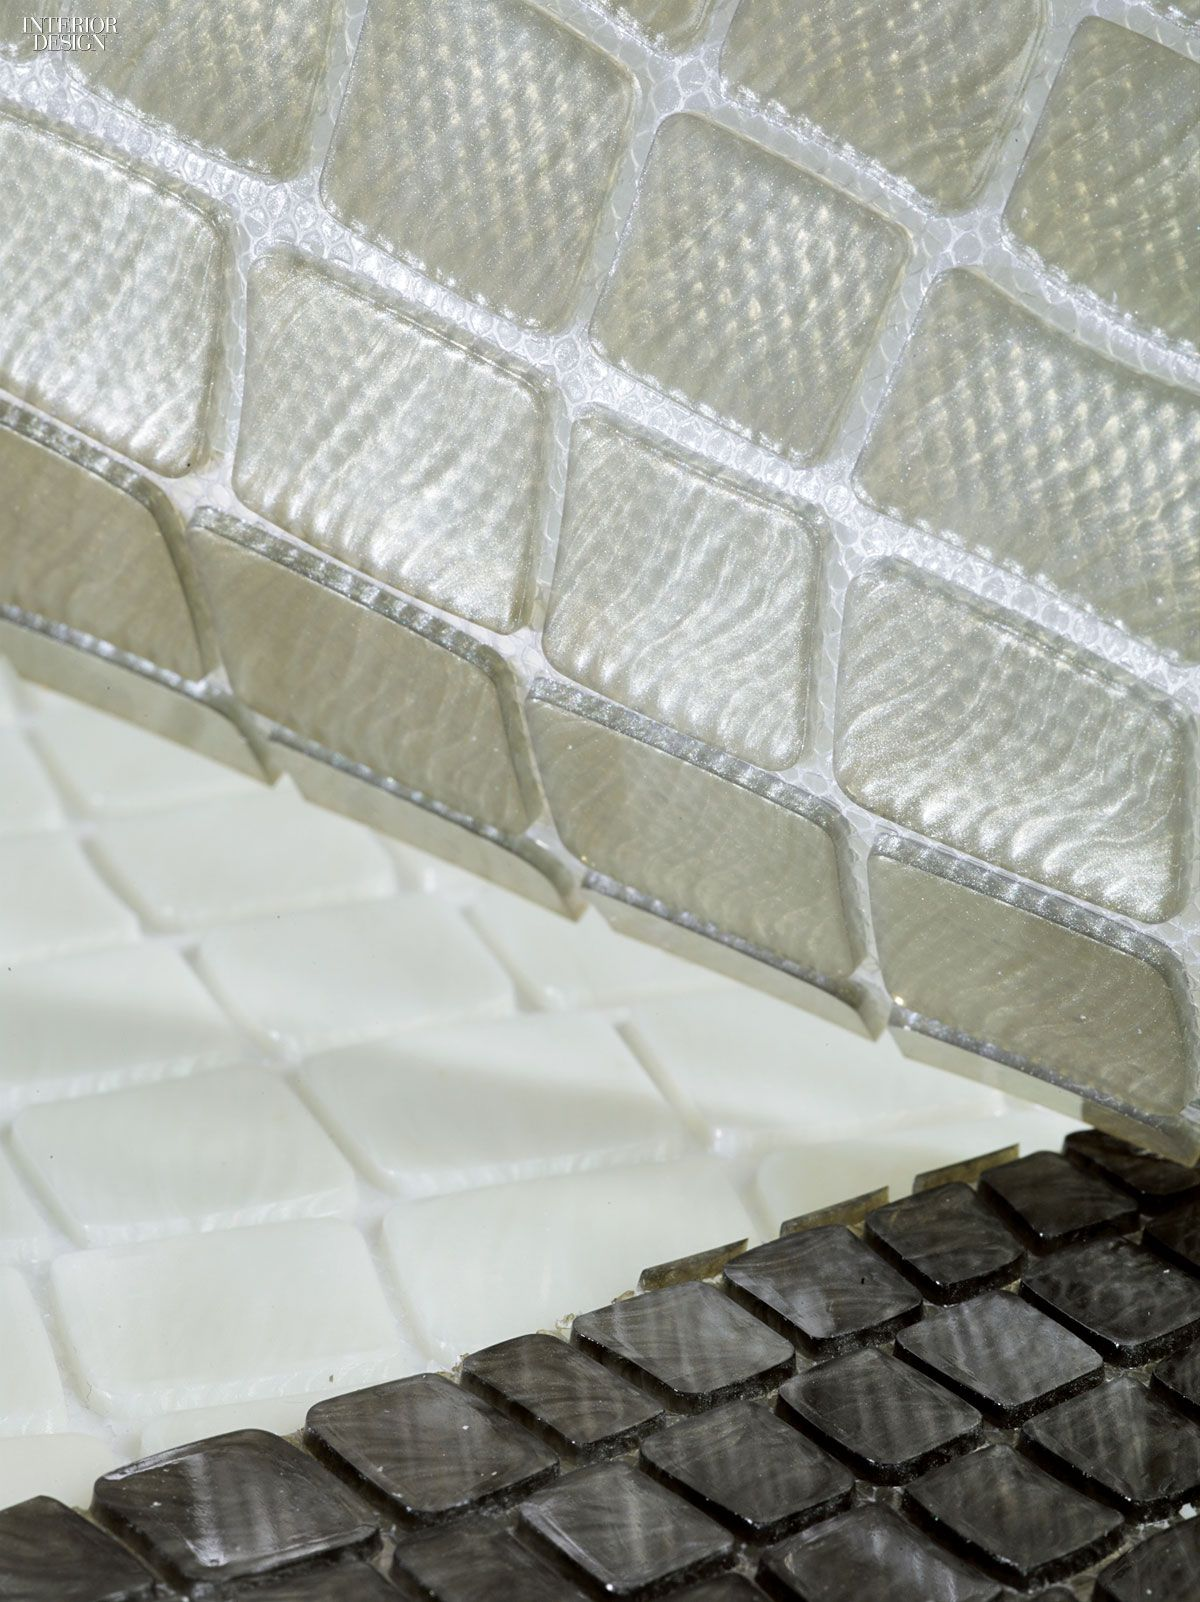 3. Material: Nile Croc. Manufacturer: Sonite Innovative Surfaces. Composition: Polyester.Photography by Paul Godwin.